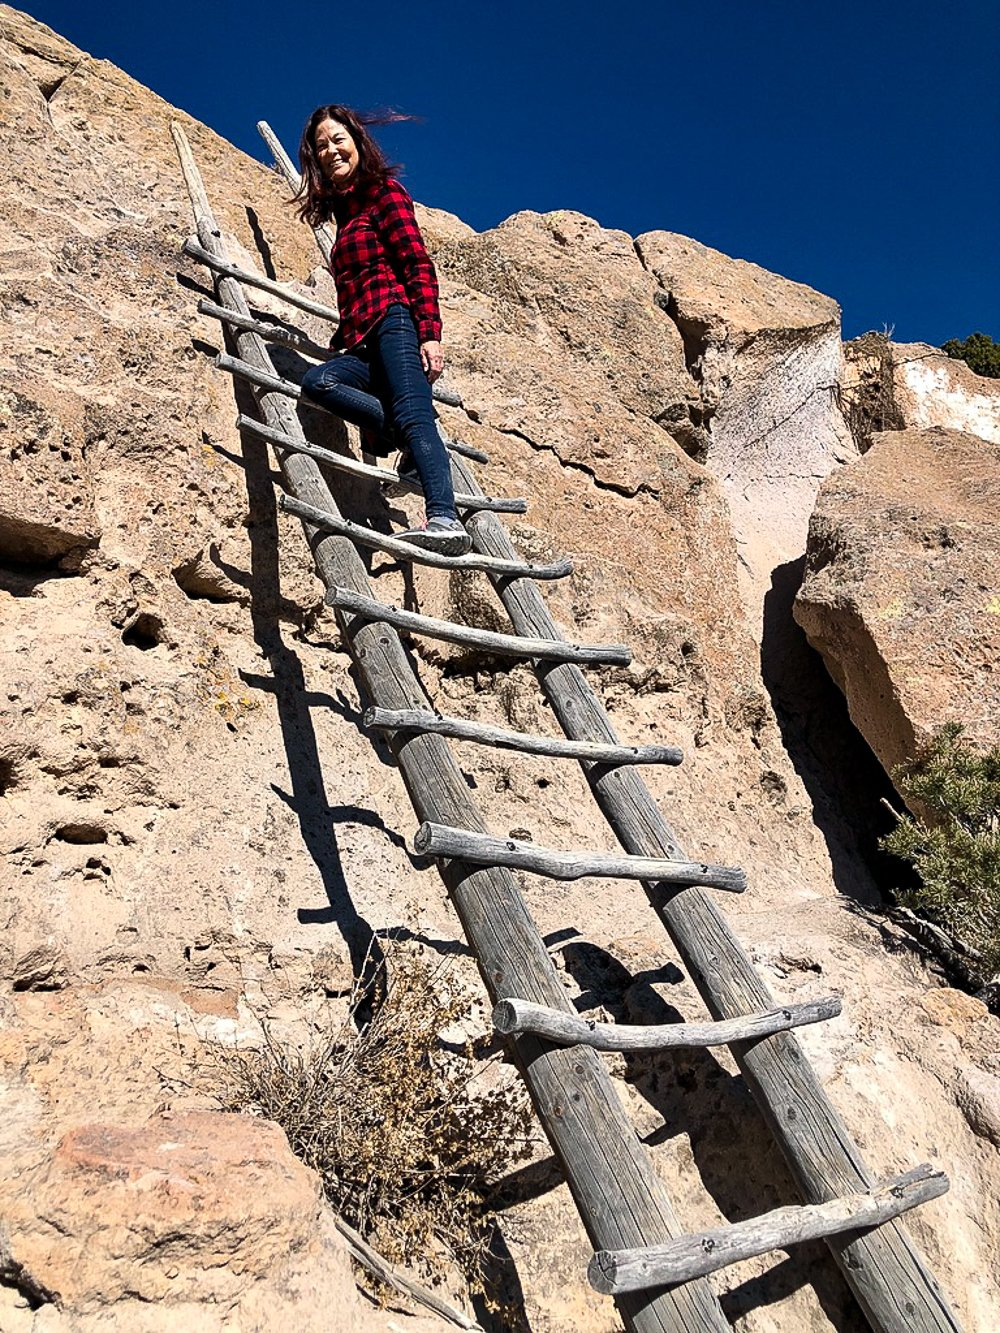 Ladder to the mesa top, hiking in Bandelier National Monument